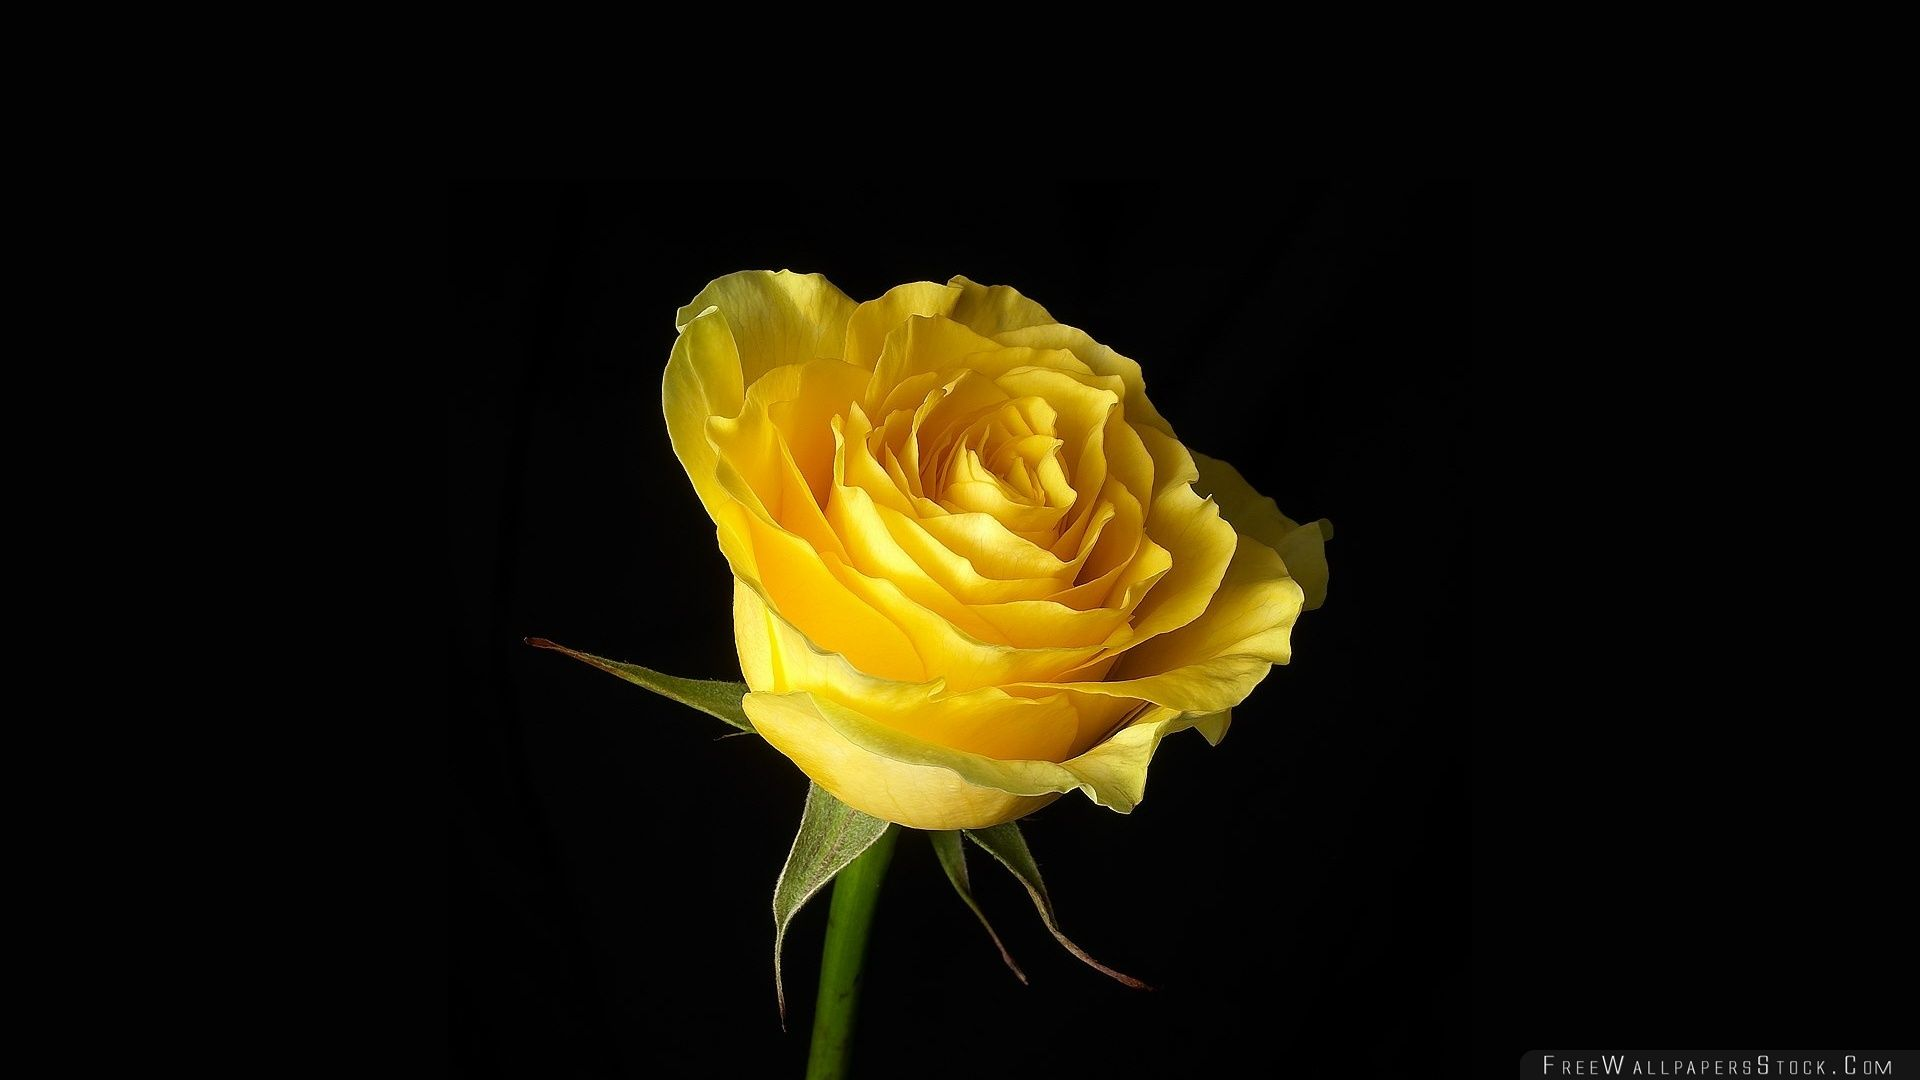 Download Free Wallpaper Yellow Rose